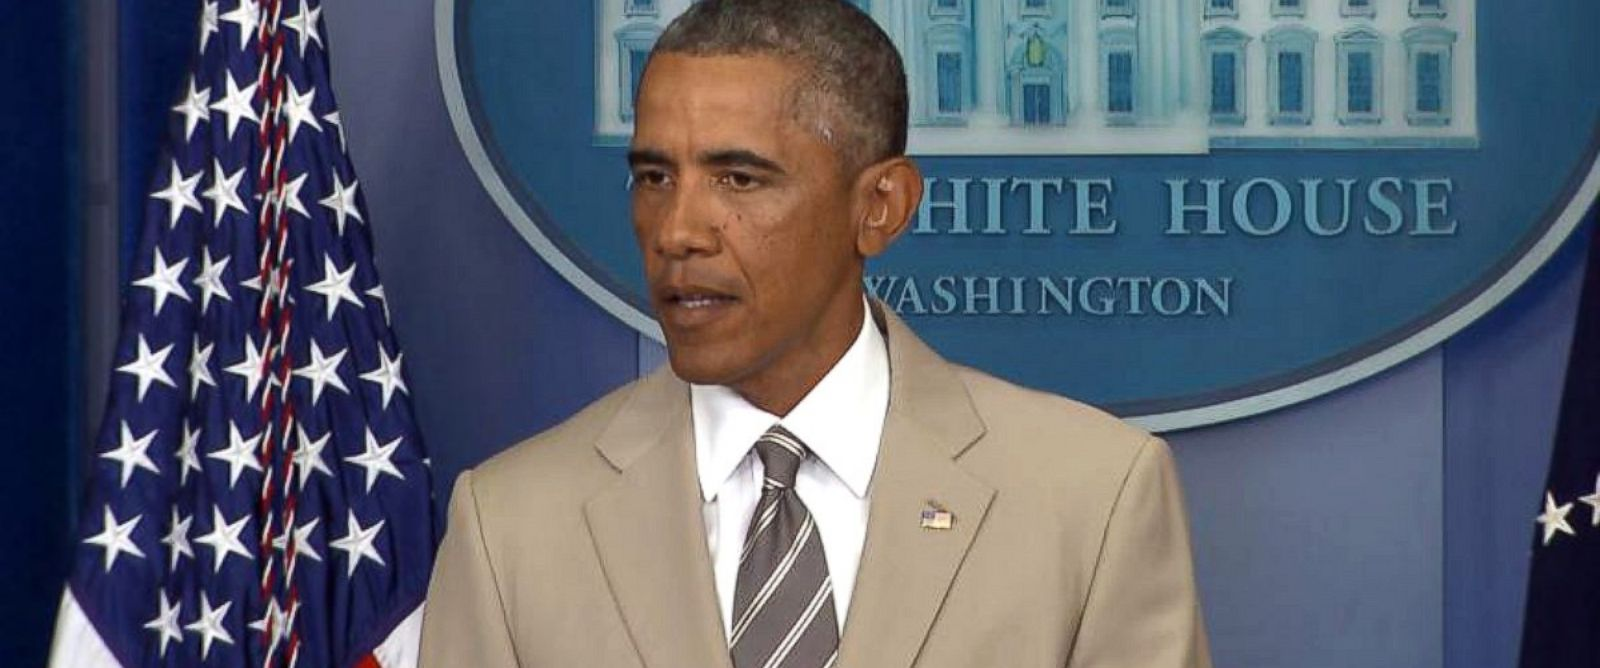 PHOTO: President Barack Obama speaks in the White House Briefing Room, Aug. 28, 2014, in Washington, DC.